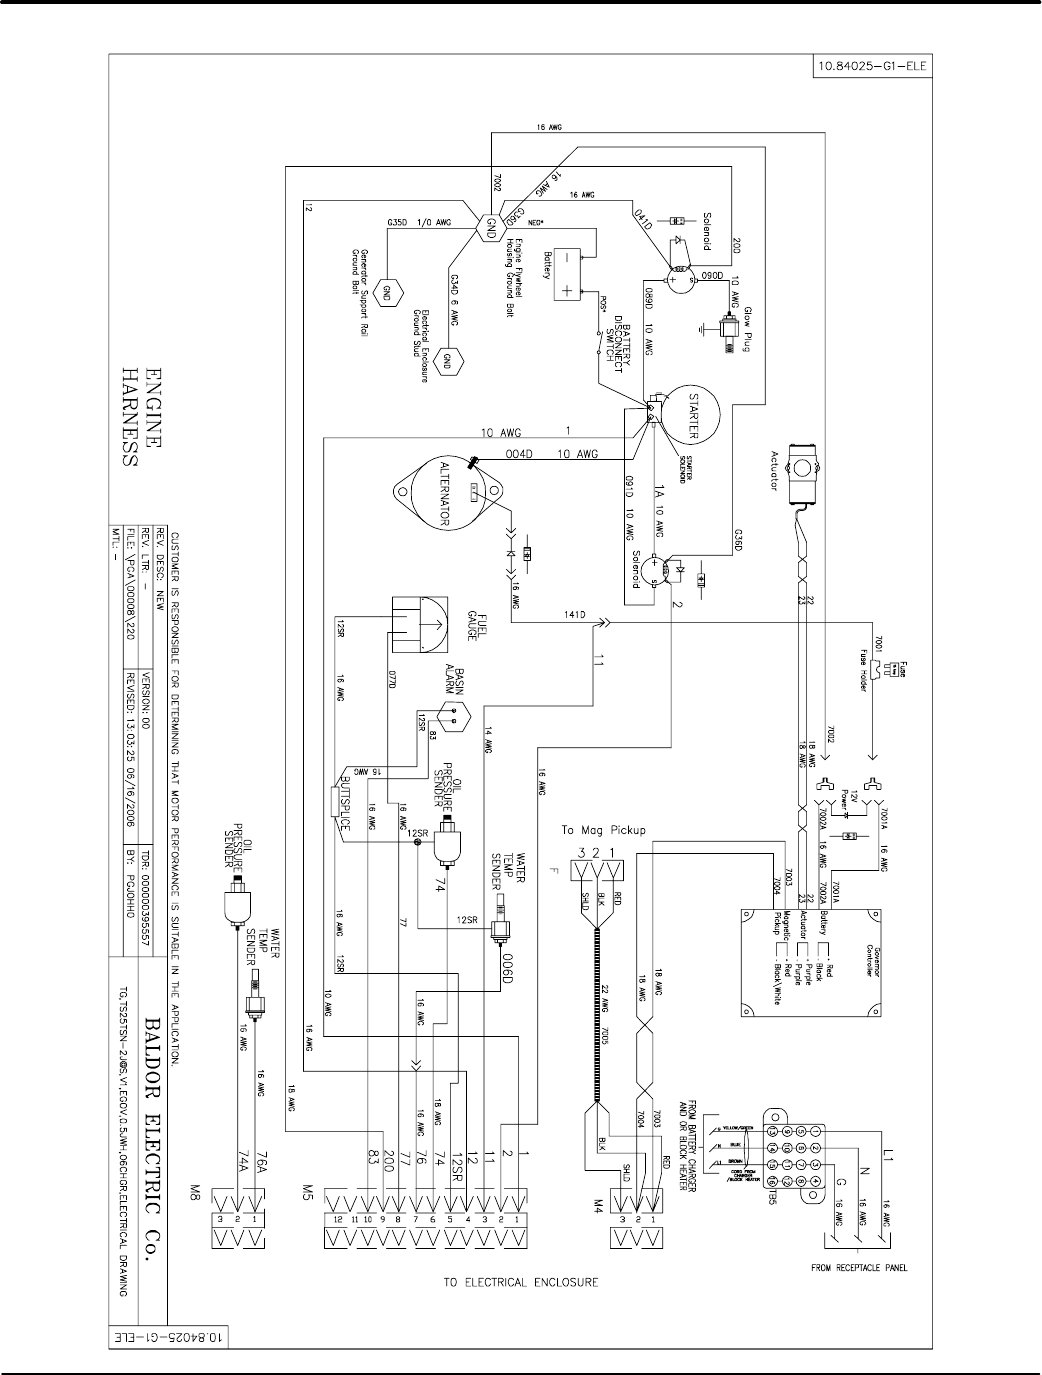 269cee50 4d34 4586 b021 d3aaa704d829 bg31 baldor generator wiring diagrams wiring diagram simonand Toyota Wiring Diagrams Color Code at virtualis.co